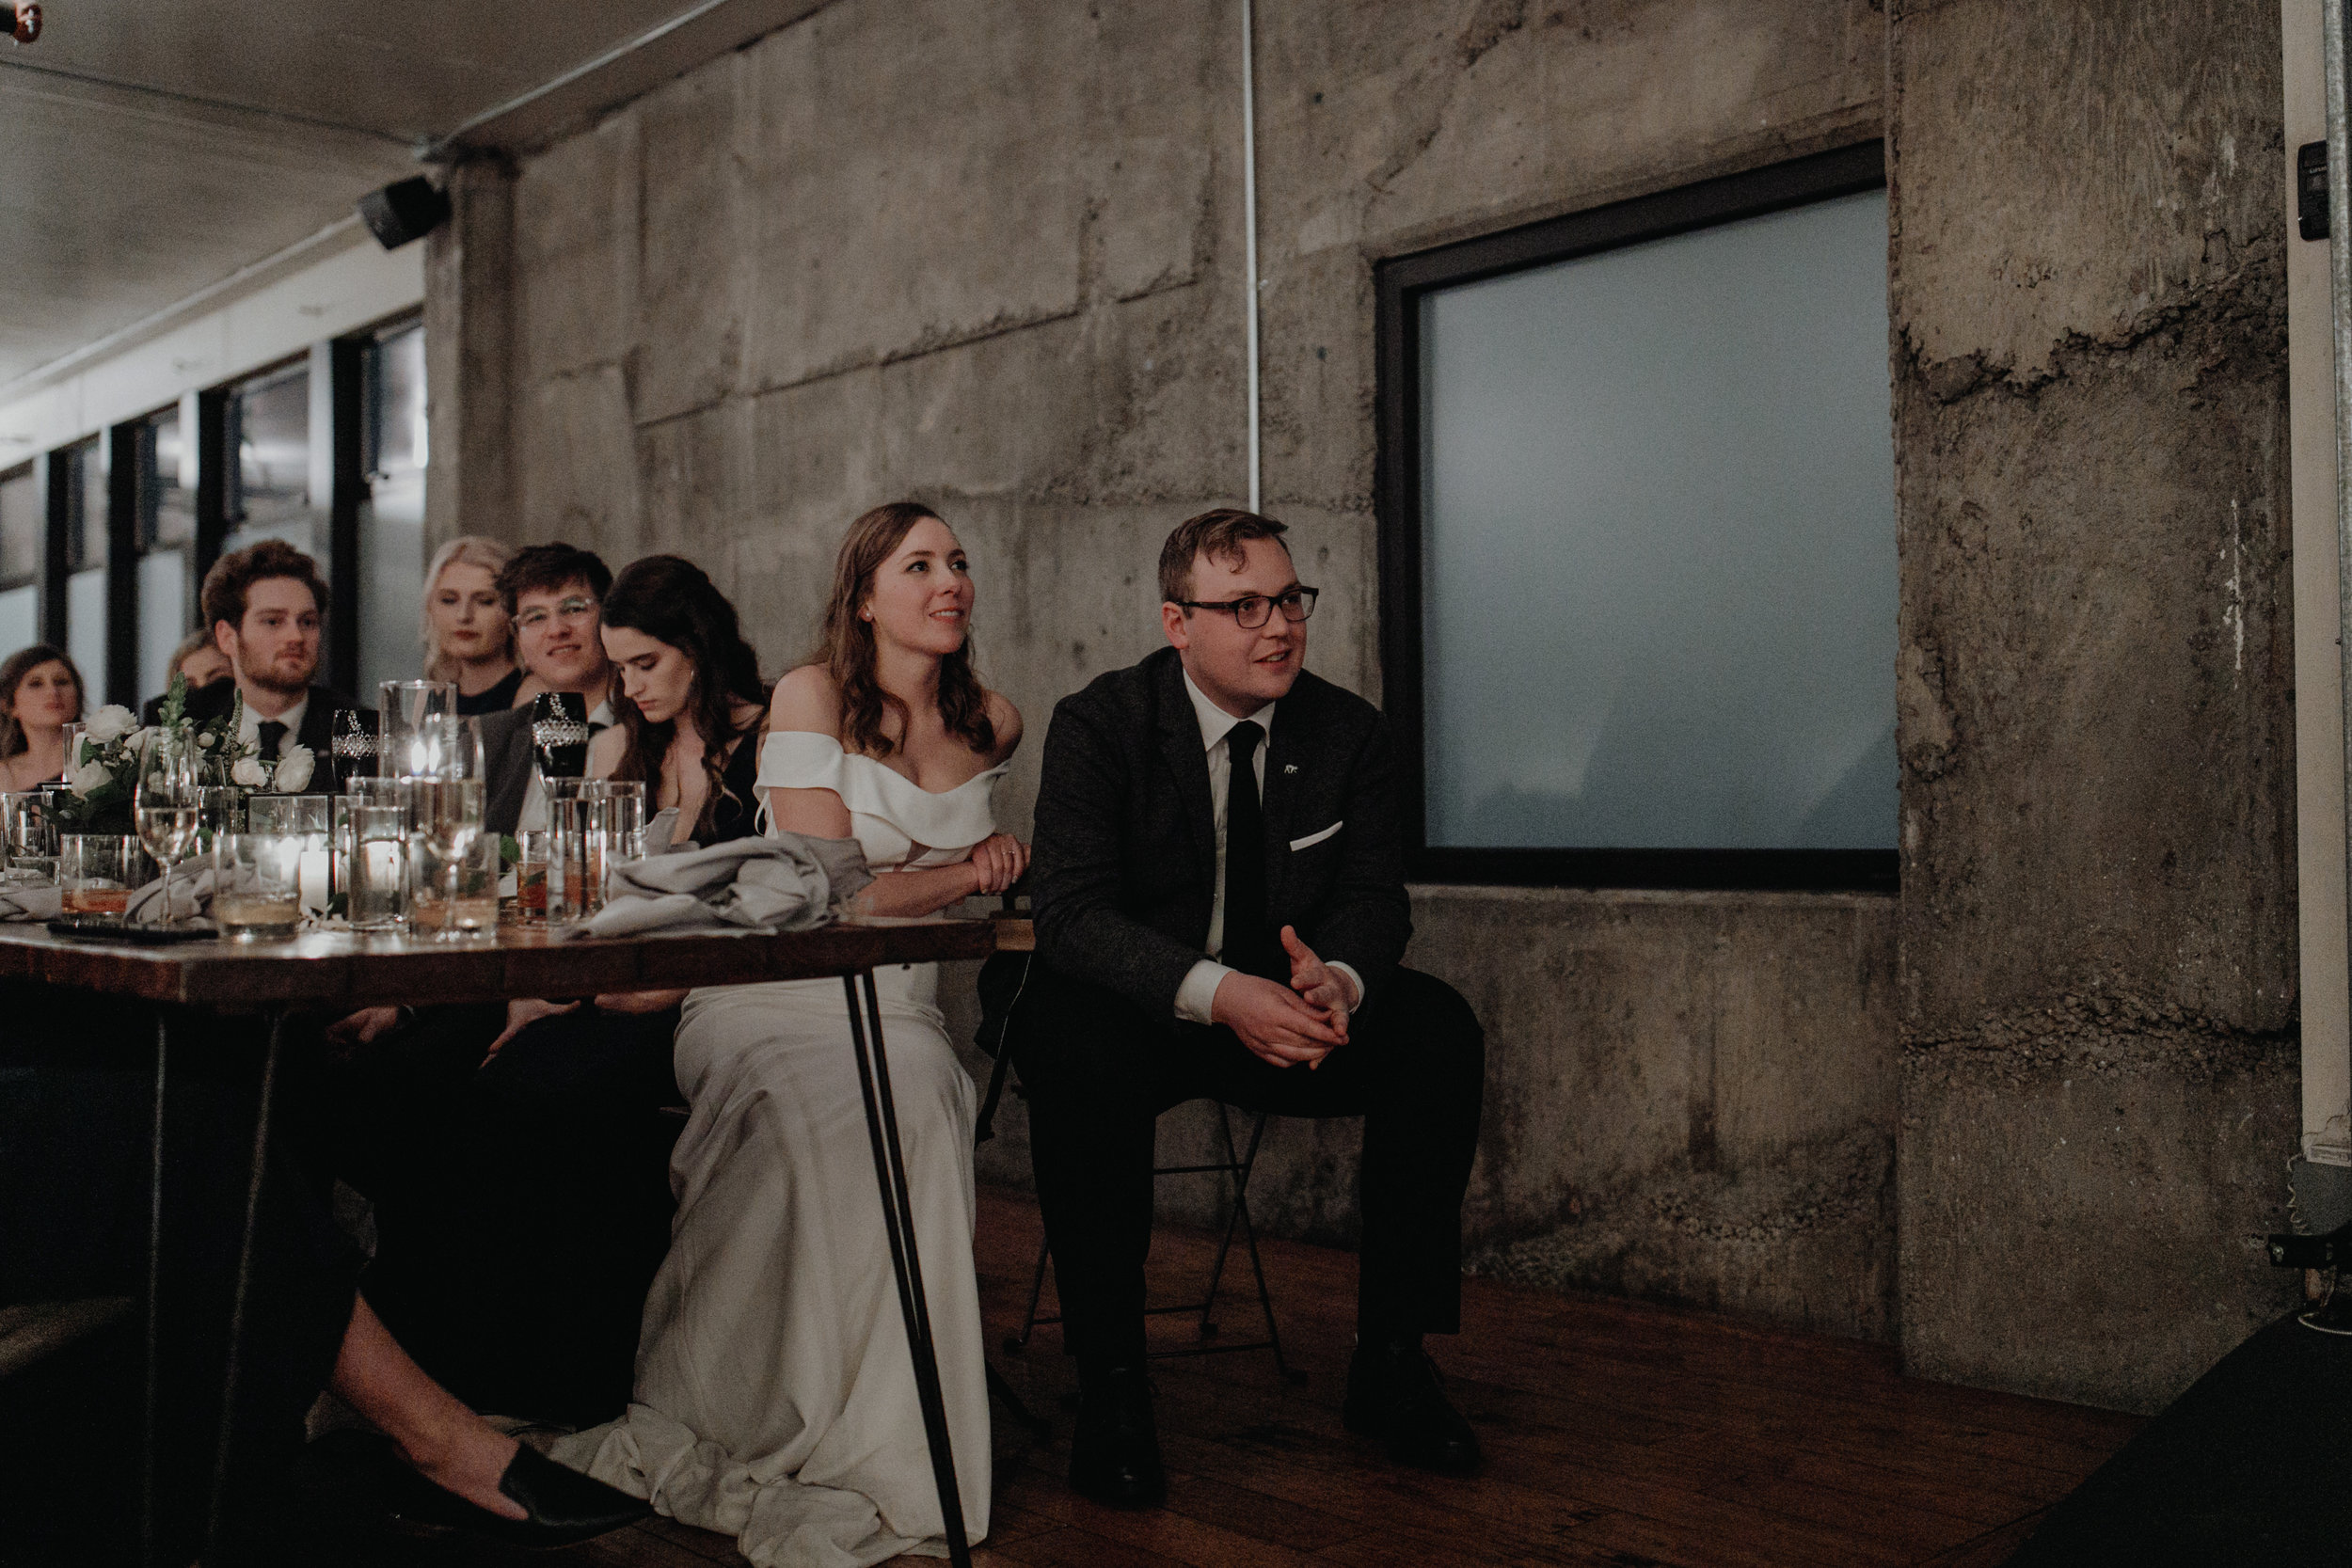 fremont_foundry_seattle_wedding_oliviastrohm___-1.jpg